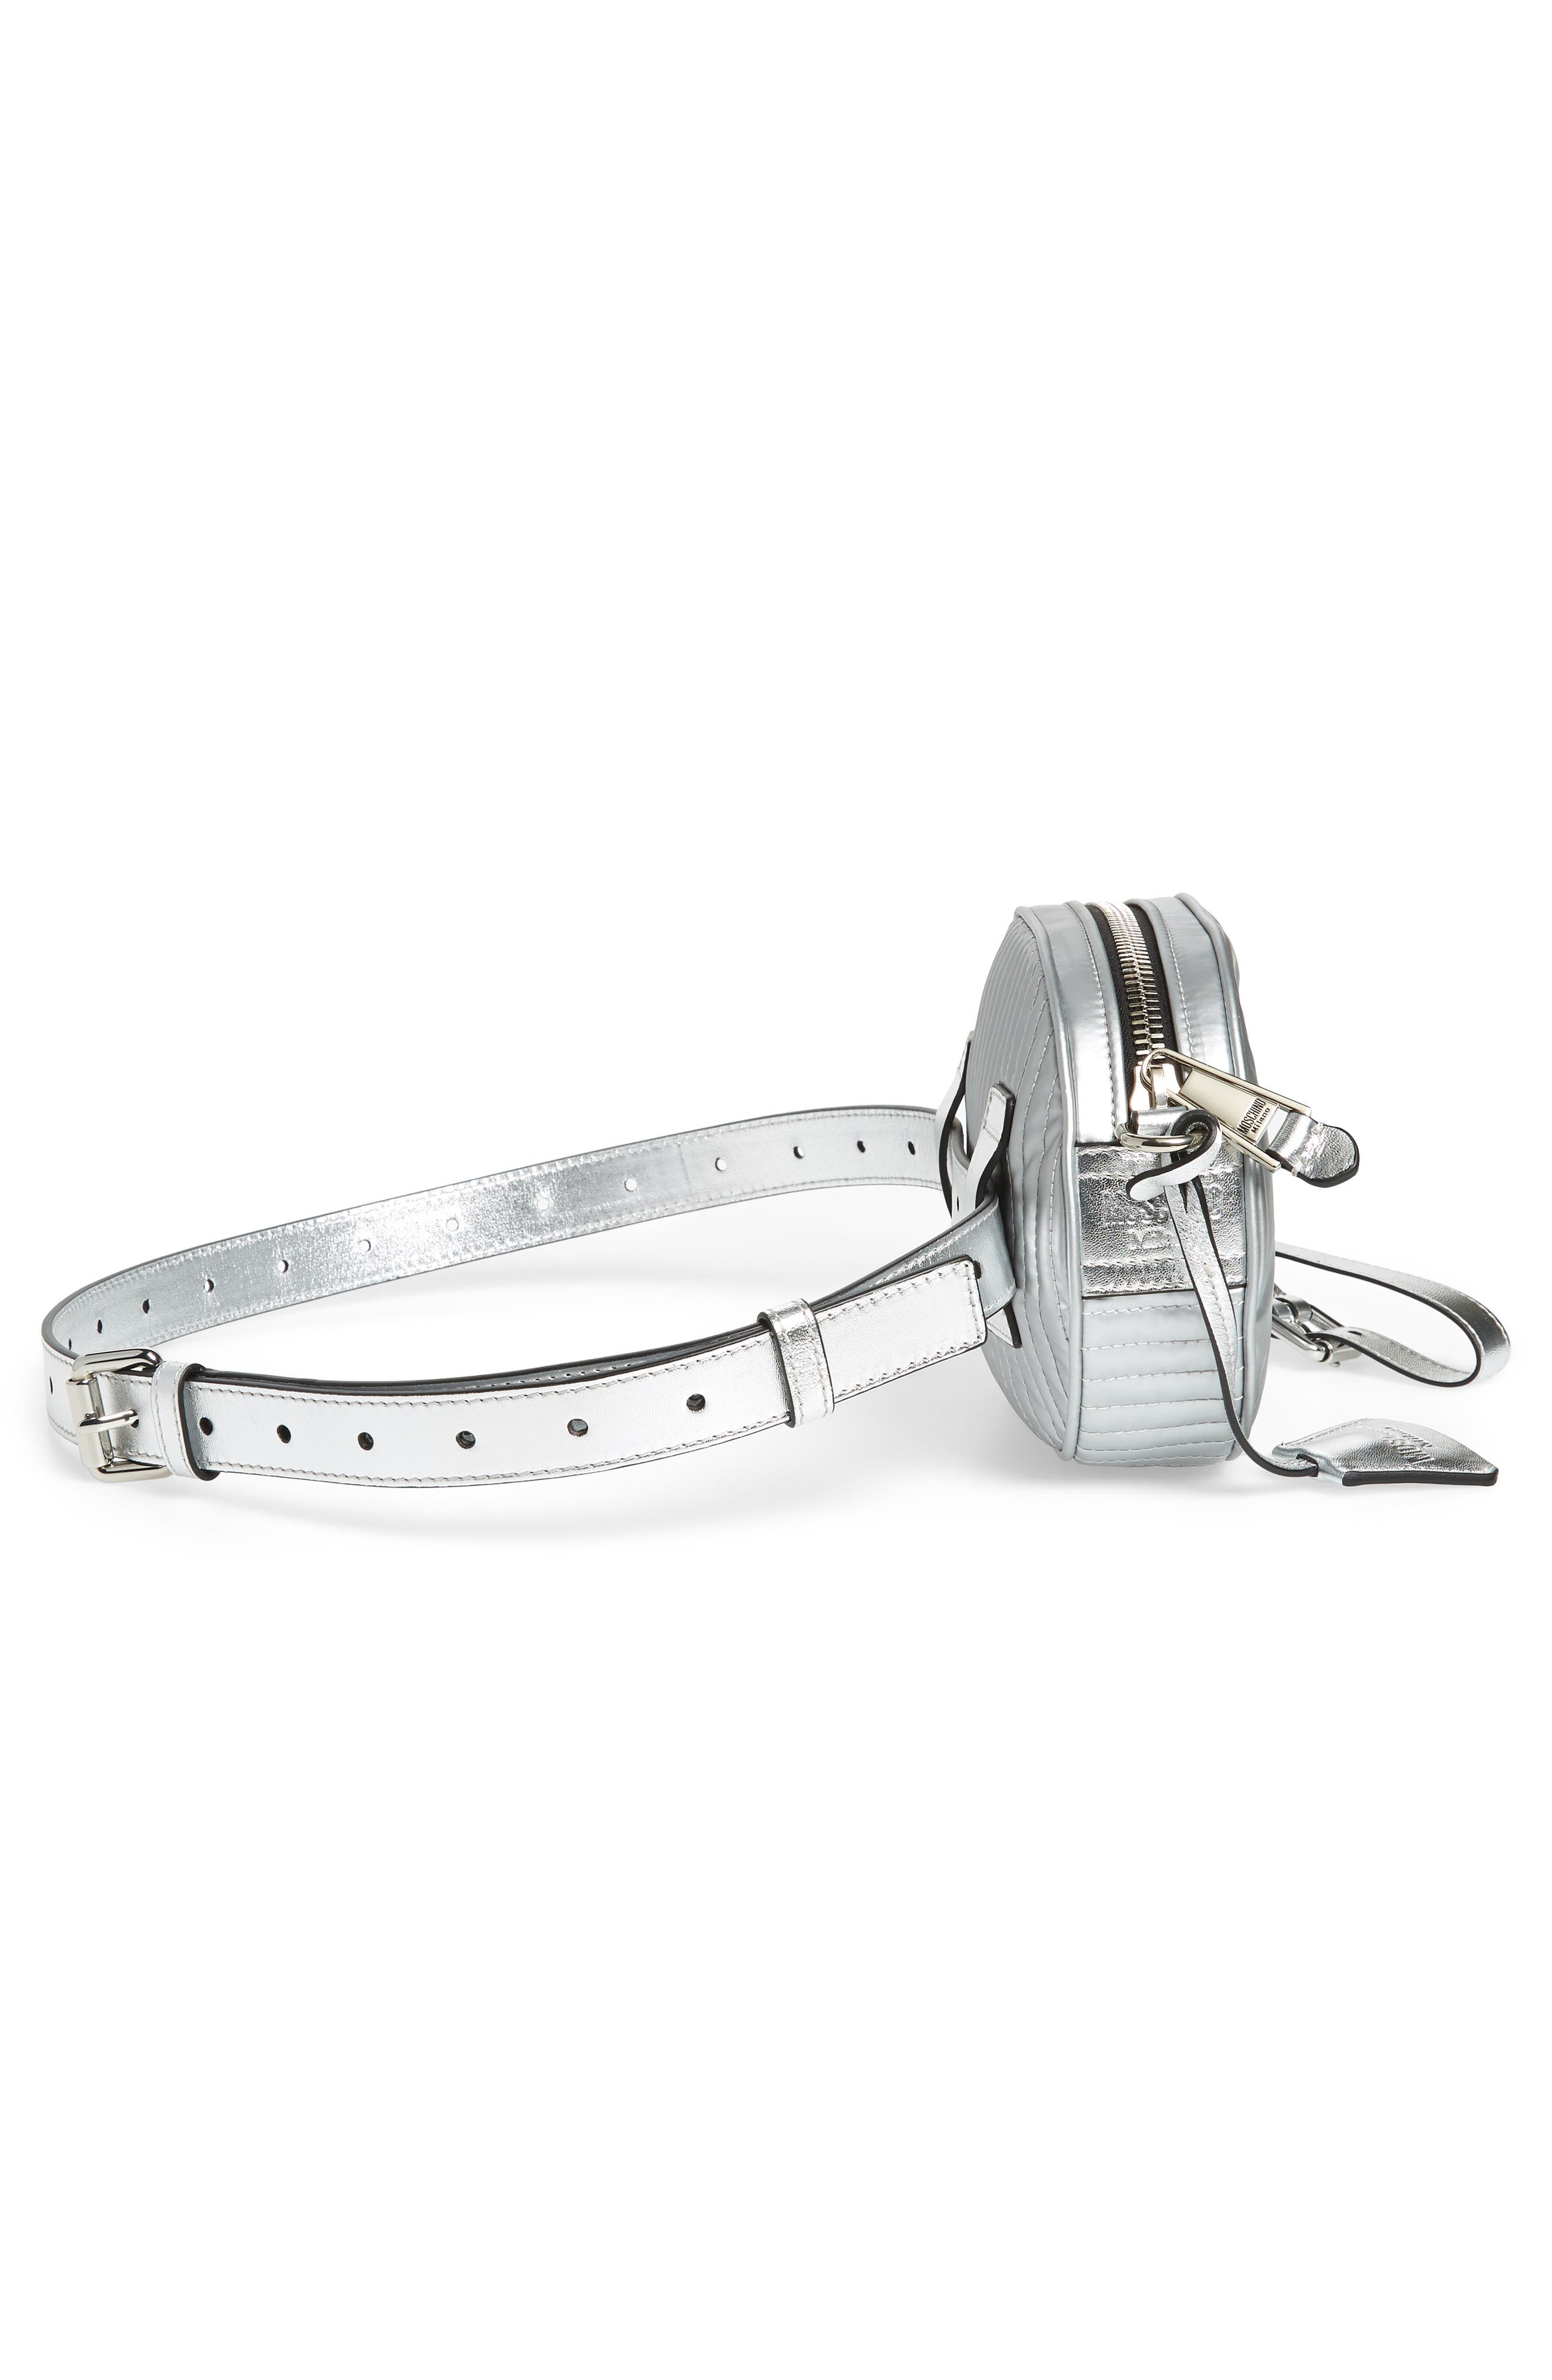 MOSCHINO, Silver Teddy Belt Bag, Alternate thumbnail 6, color, SILVER